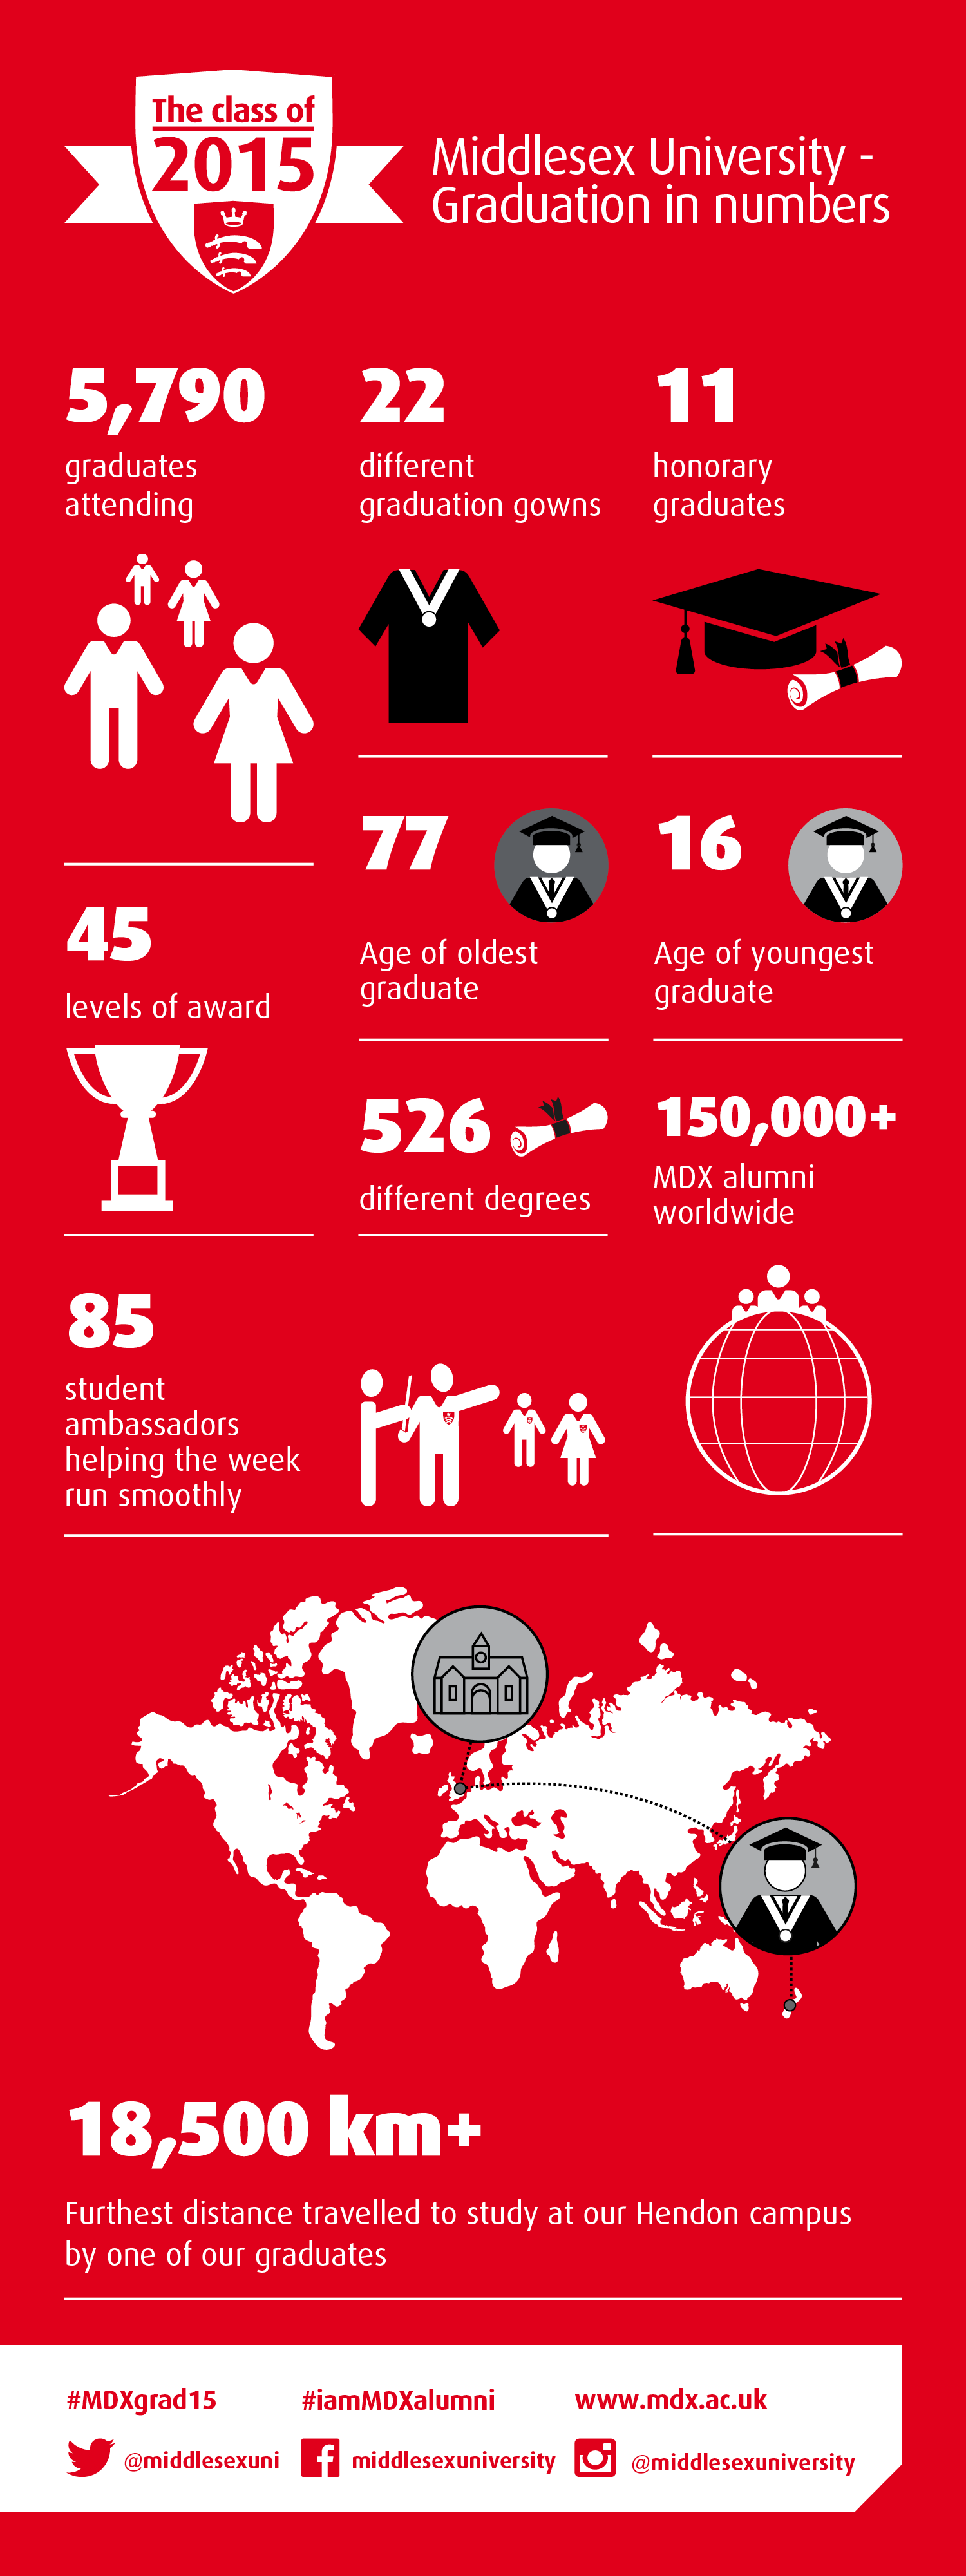 Graduation in numbers infographic